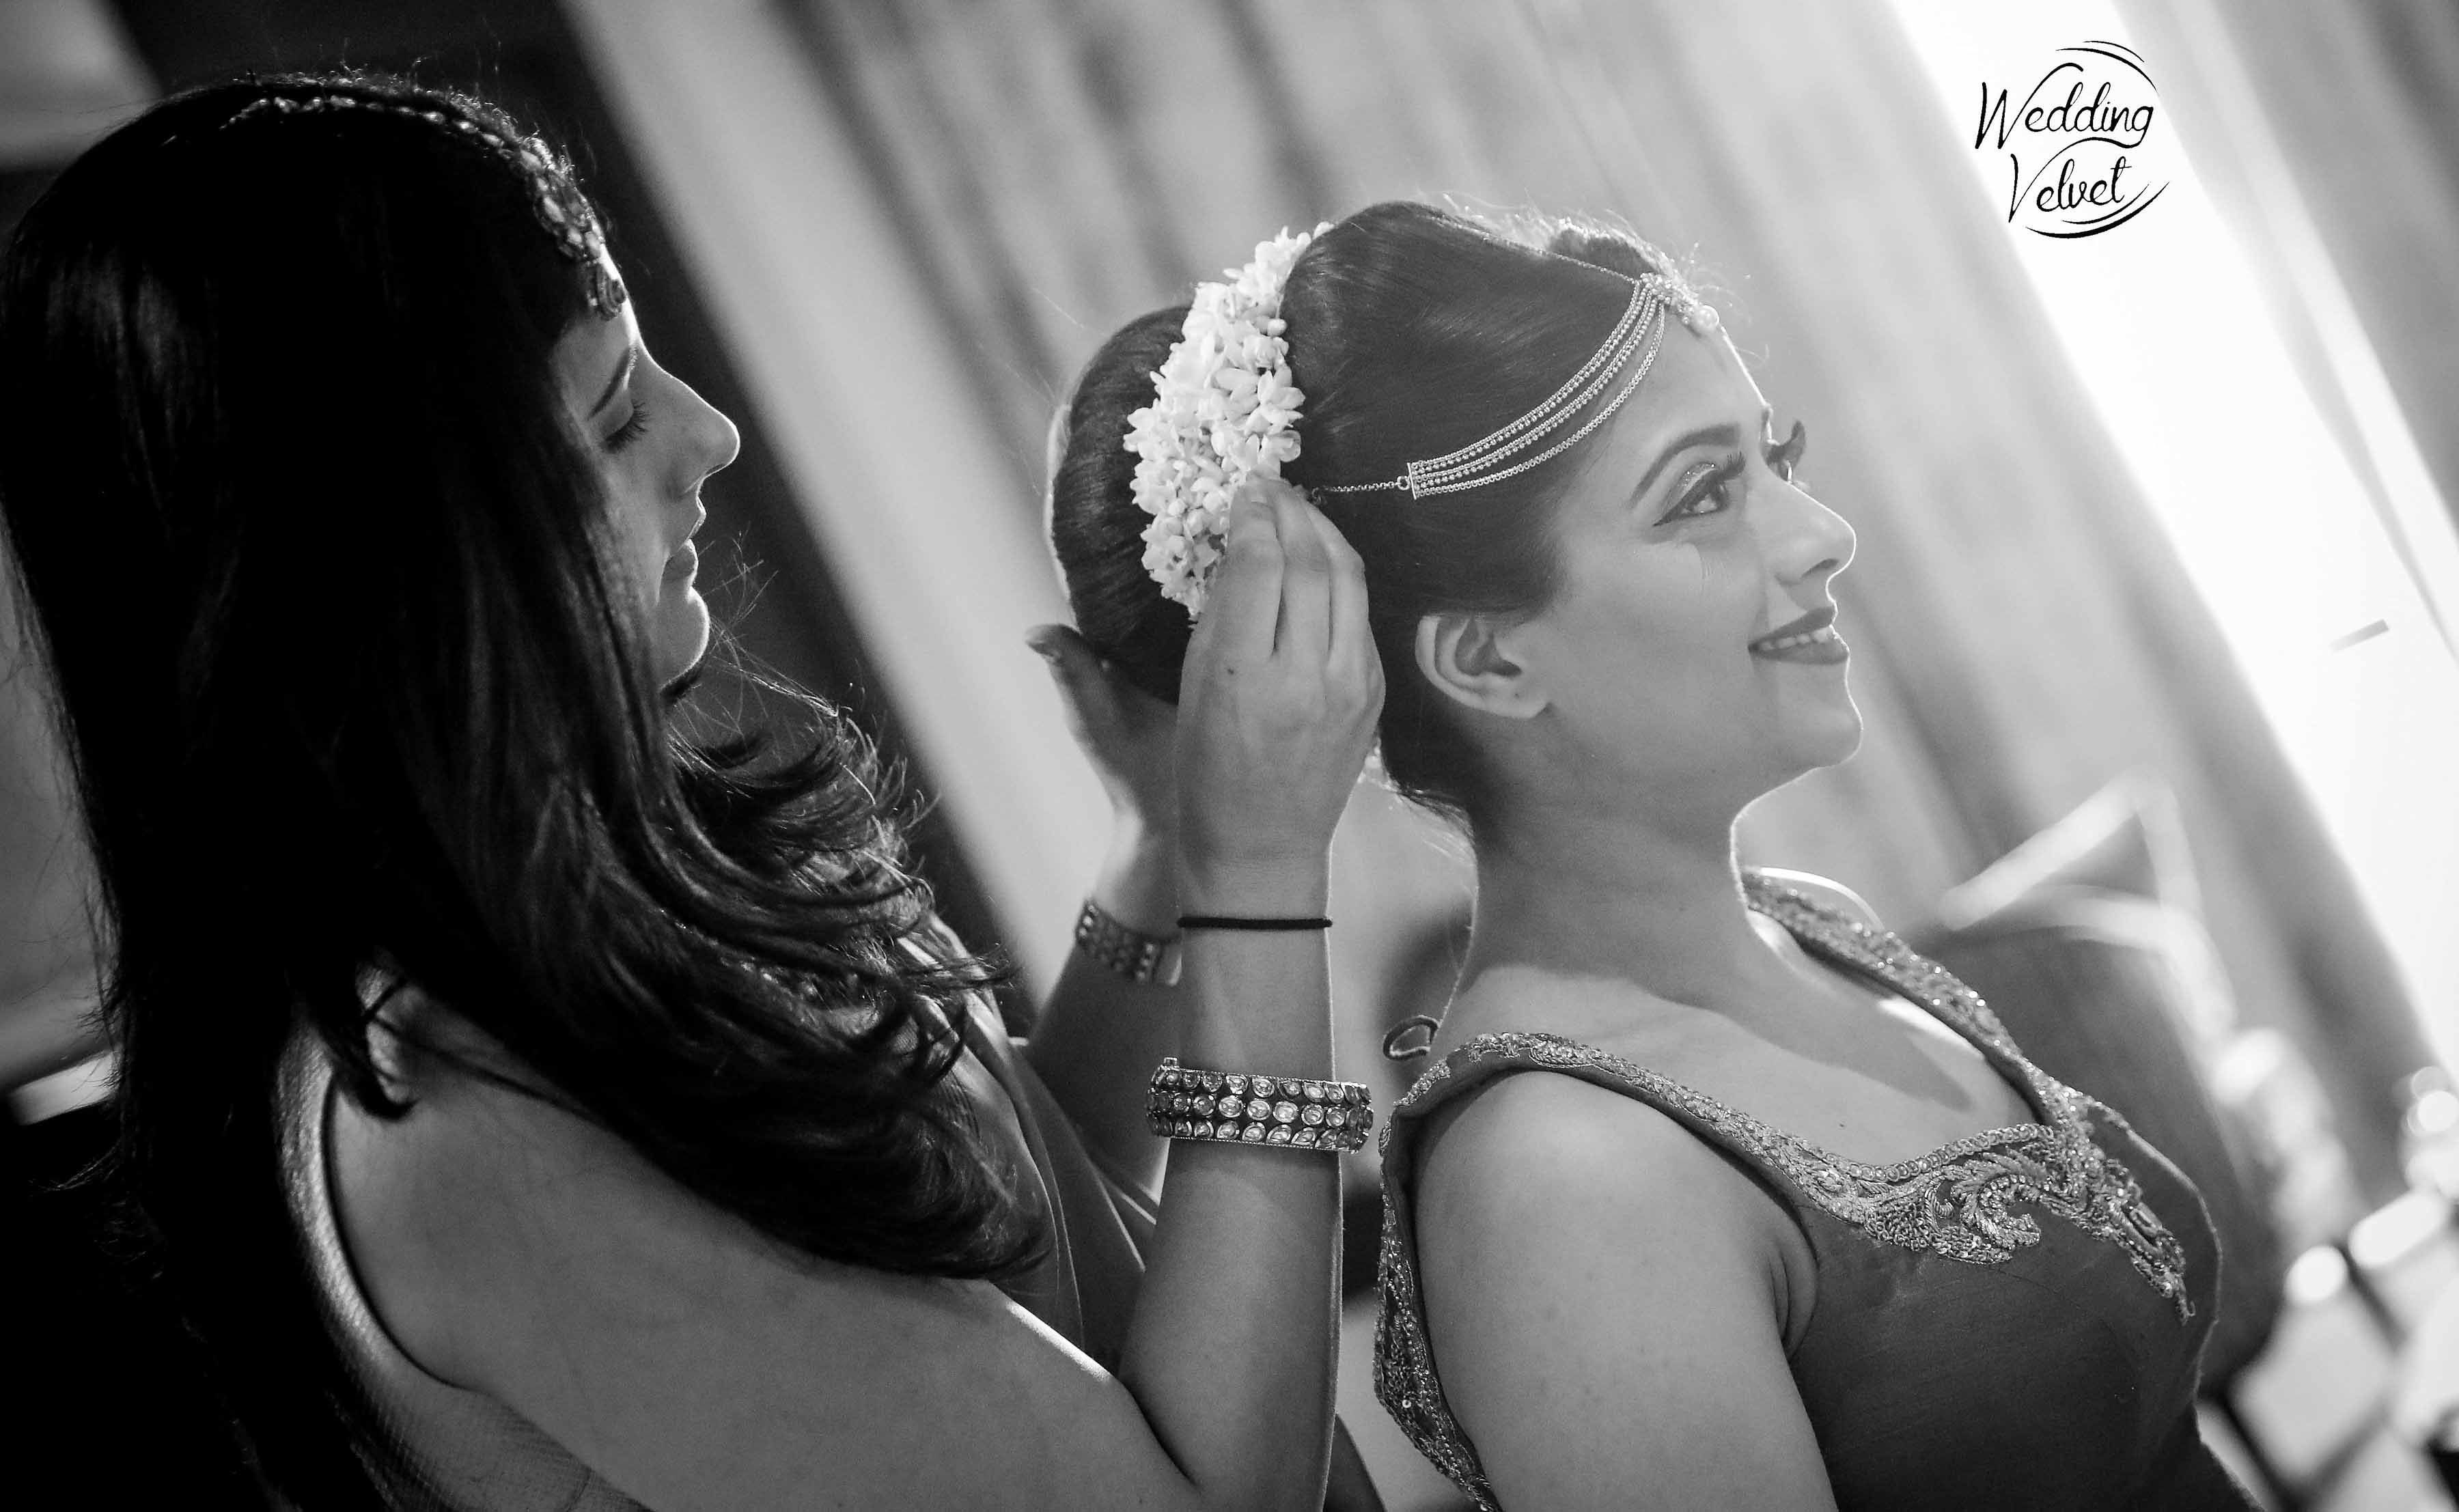 Candid Wedding photographer in Bikaner, Udaipur, Jodhpur, Ajmer